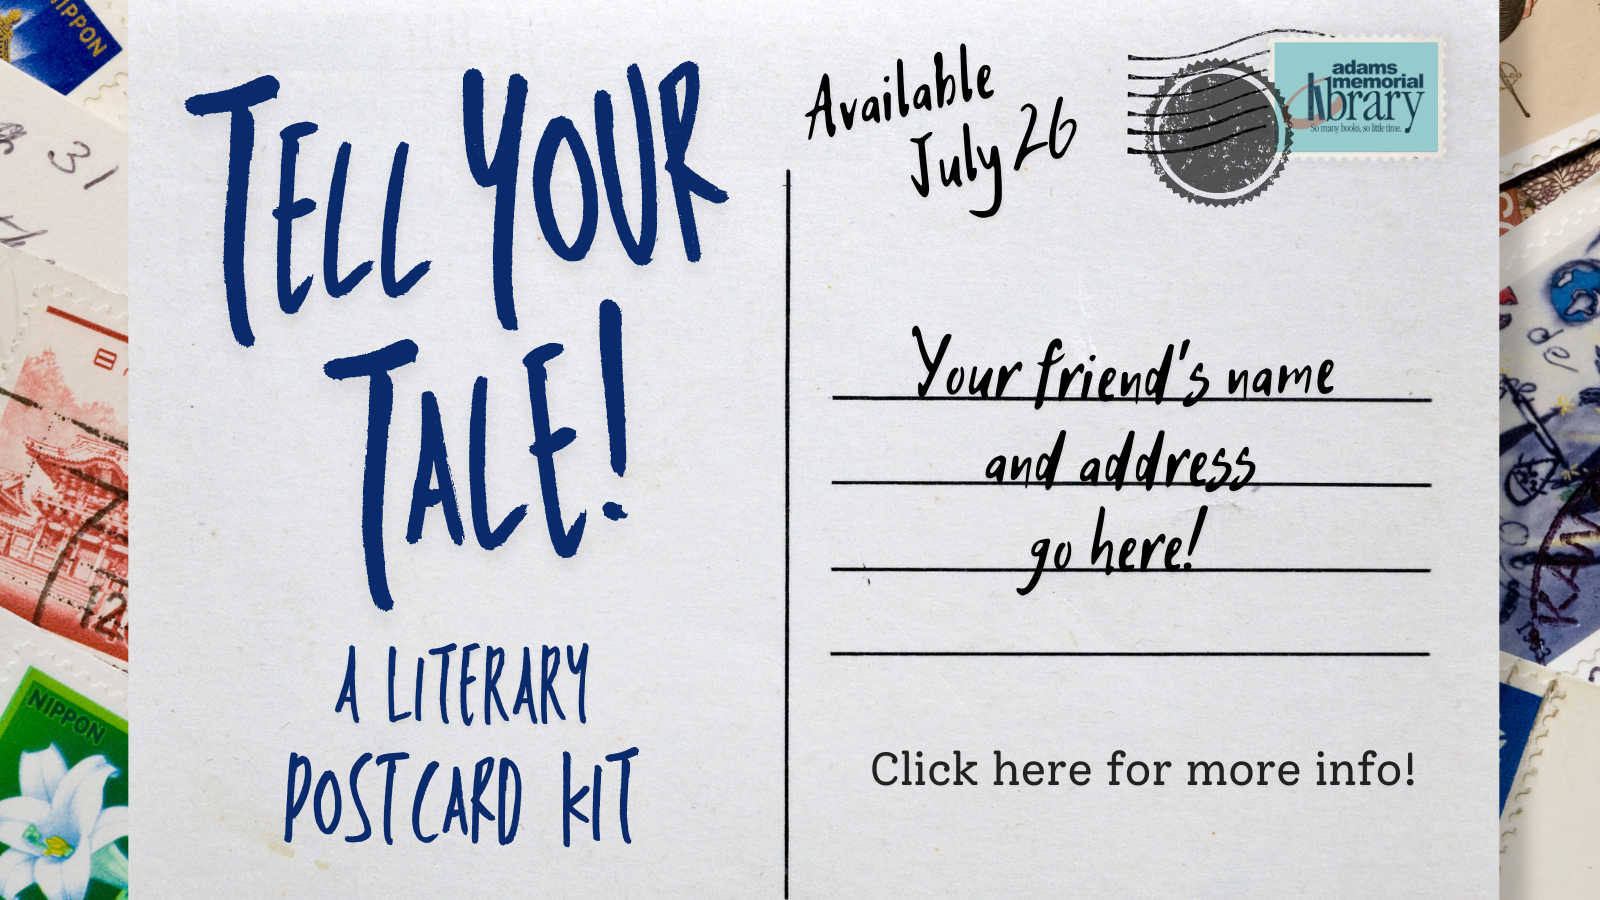 Tell Your Tale Postcard Kit available July 26!